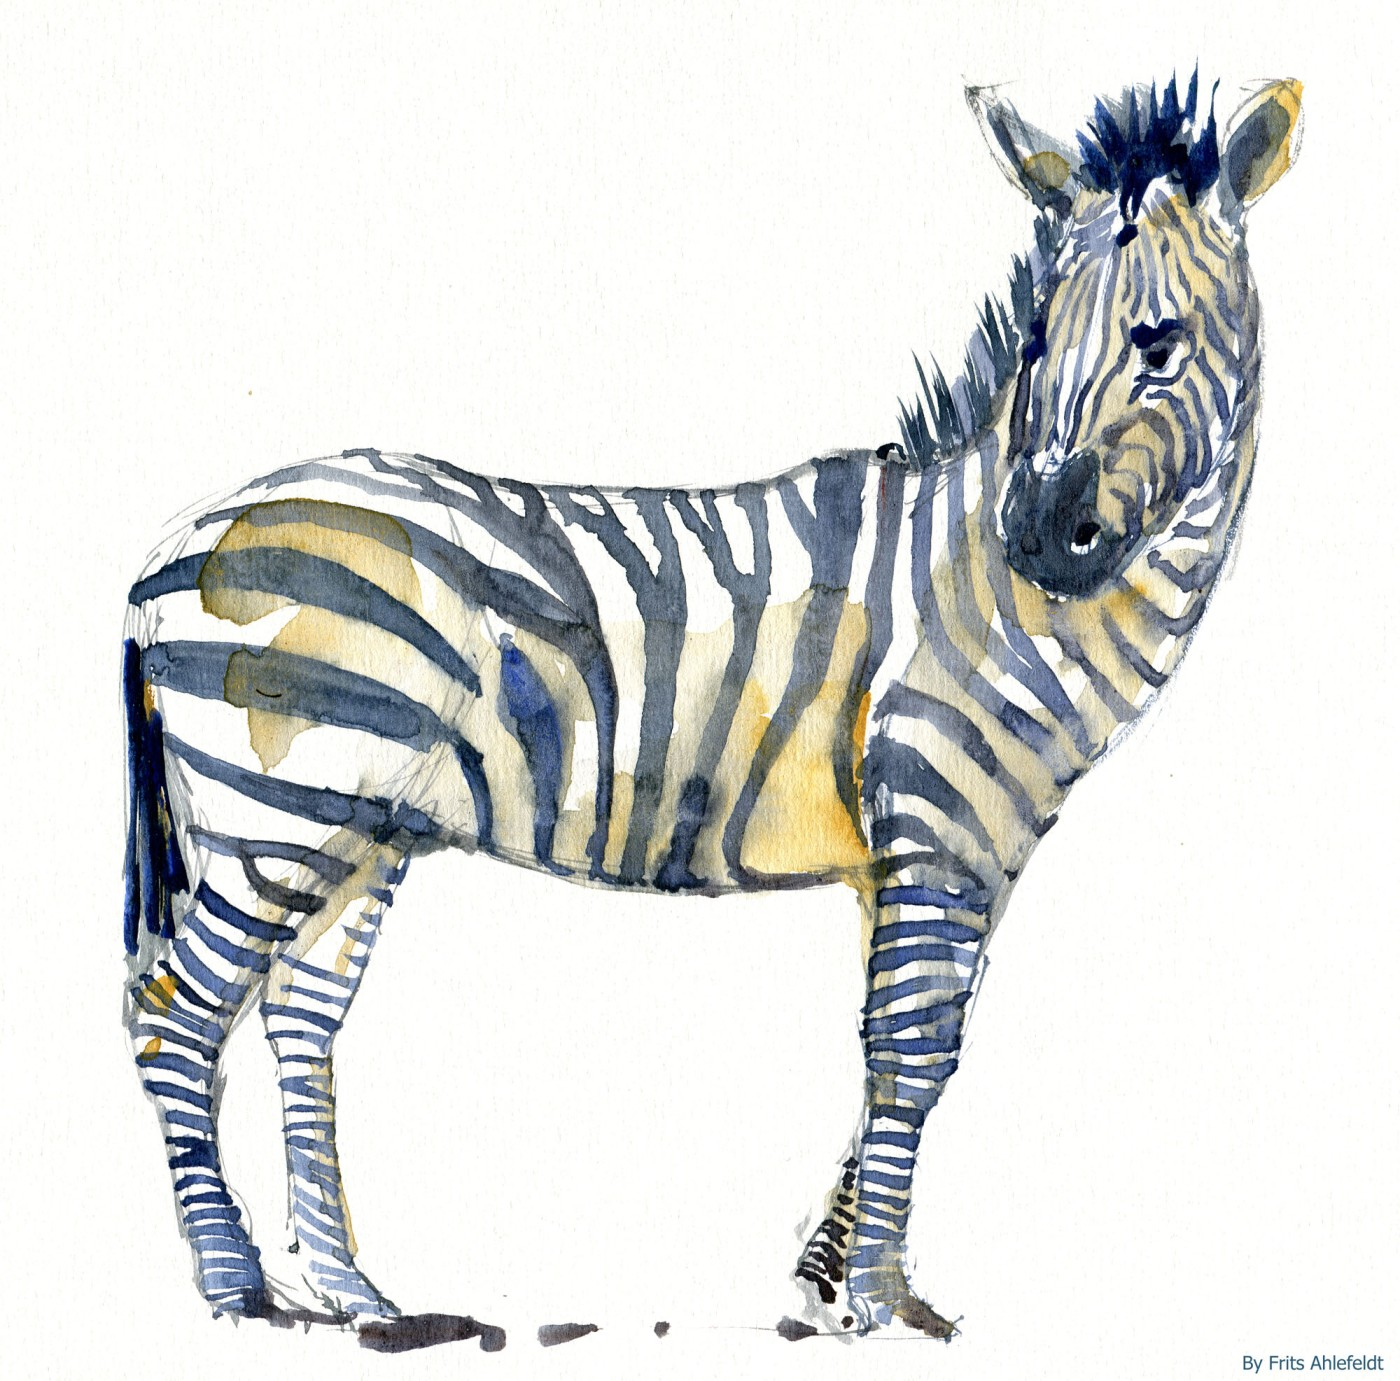 zebra watercolor-by-frits-ahlefeldt